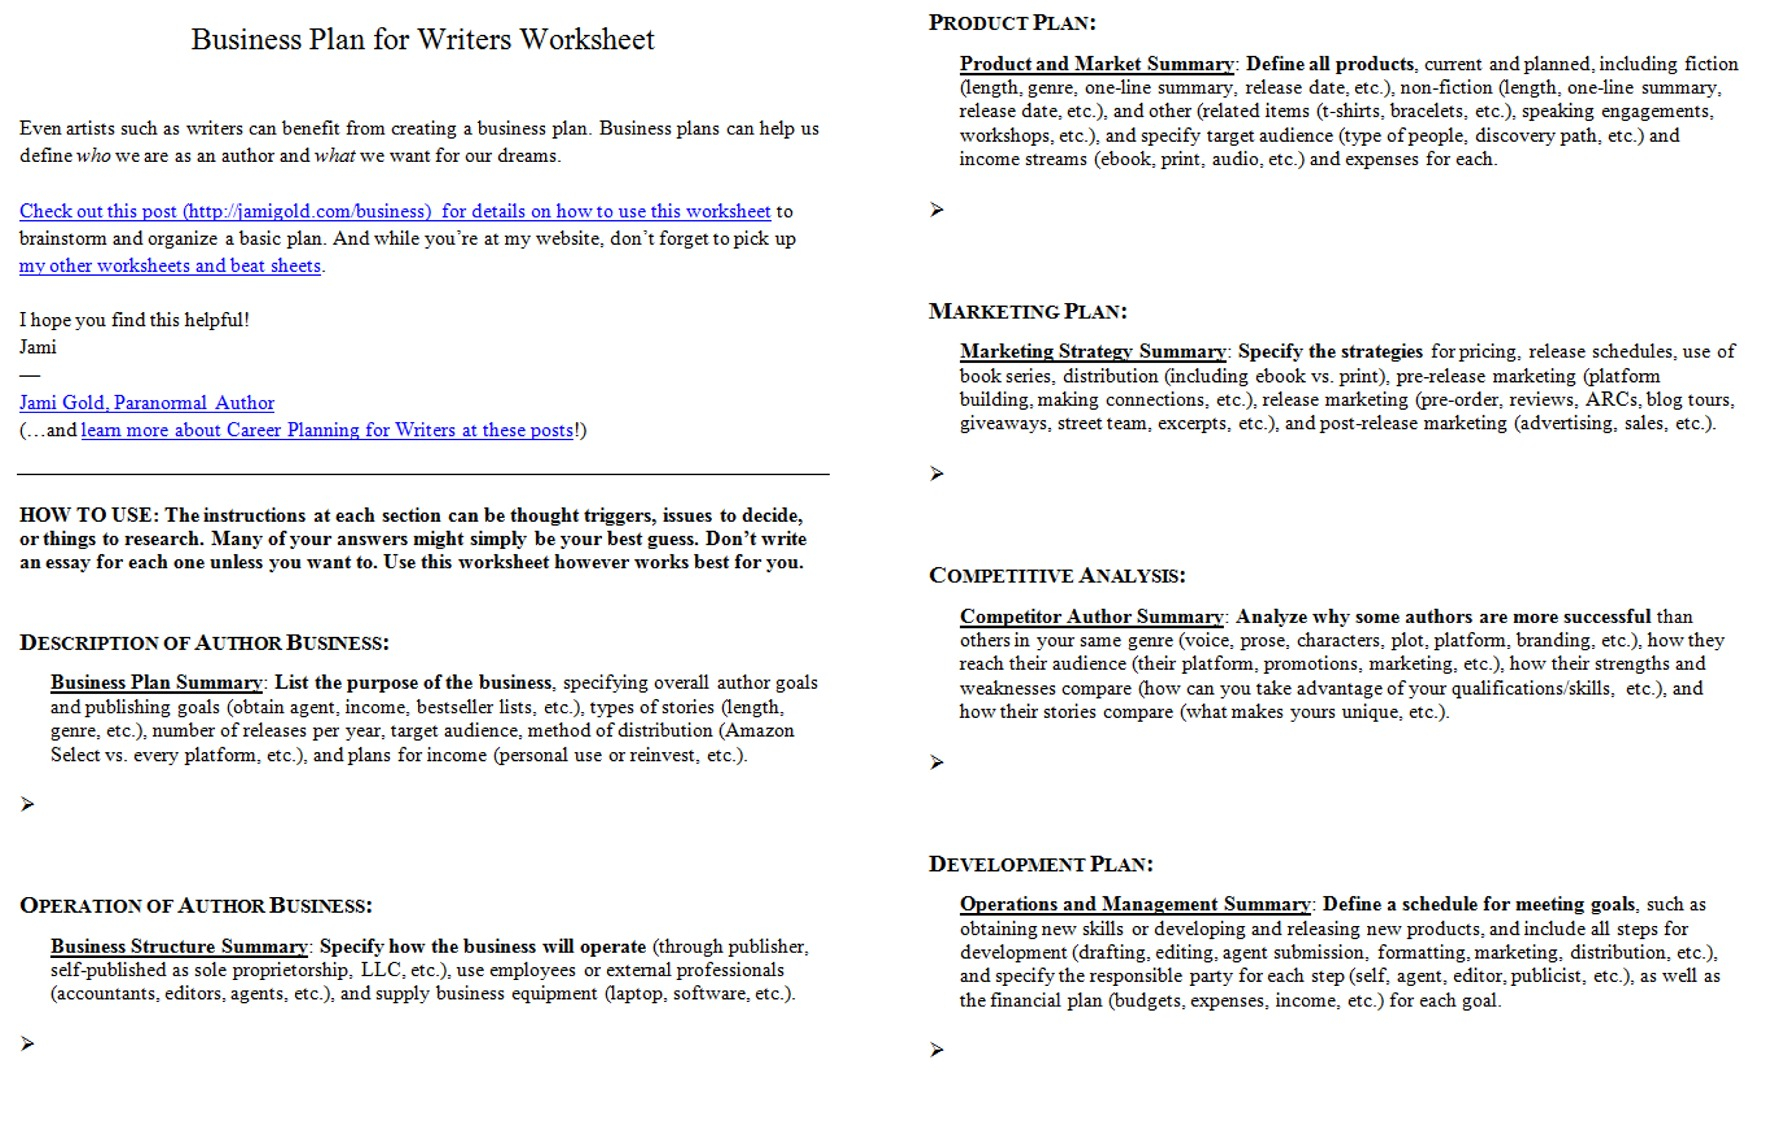 Weirdmailus  Outstanding Worksheets For Writers  Jami Gold Paranormal Author With Gorgeous Screen Shot Of Both Pages Of The Business Plan For Writers Worksheet With Astounding Reading Measurements Worksheets Also Shapes D And D Worksheets In Addition Distributive Property Multiplication Worksheet And Kindergarten  Worksheets As Well As Year  Math Worksheets Additionally Teacher Worksheet Sites From Jamigoldcom With Weirdmailus  Gorgeous Worksheets For Writers  Jami Gold Paranormal Author With Astounding Screen Shot Of Both Pages Of The Business Plan For Writers Worksheet And Outstanding Reading Measurements Worksheets Also Shapes D And D Worksheets In Addition Distributive Property Multiplication Worksheet From Jamigoldcom